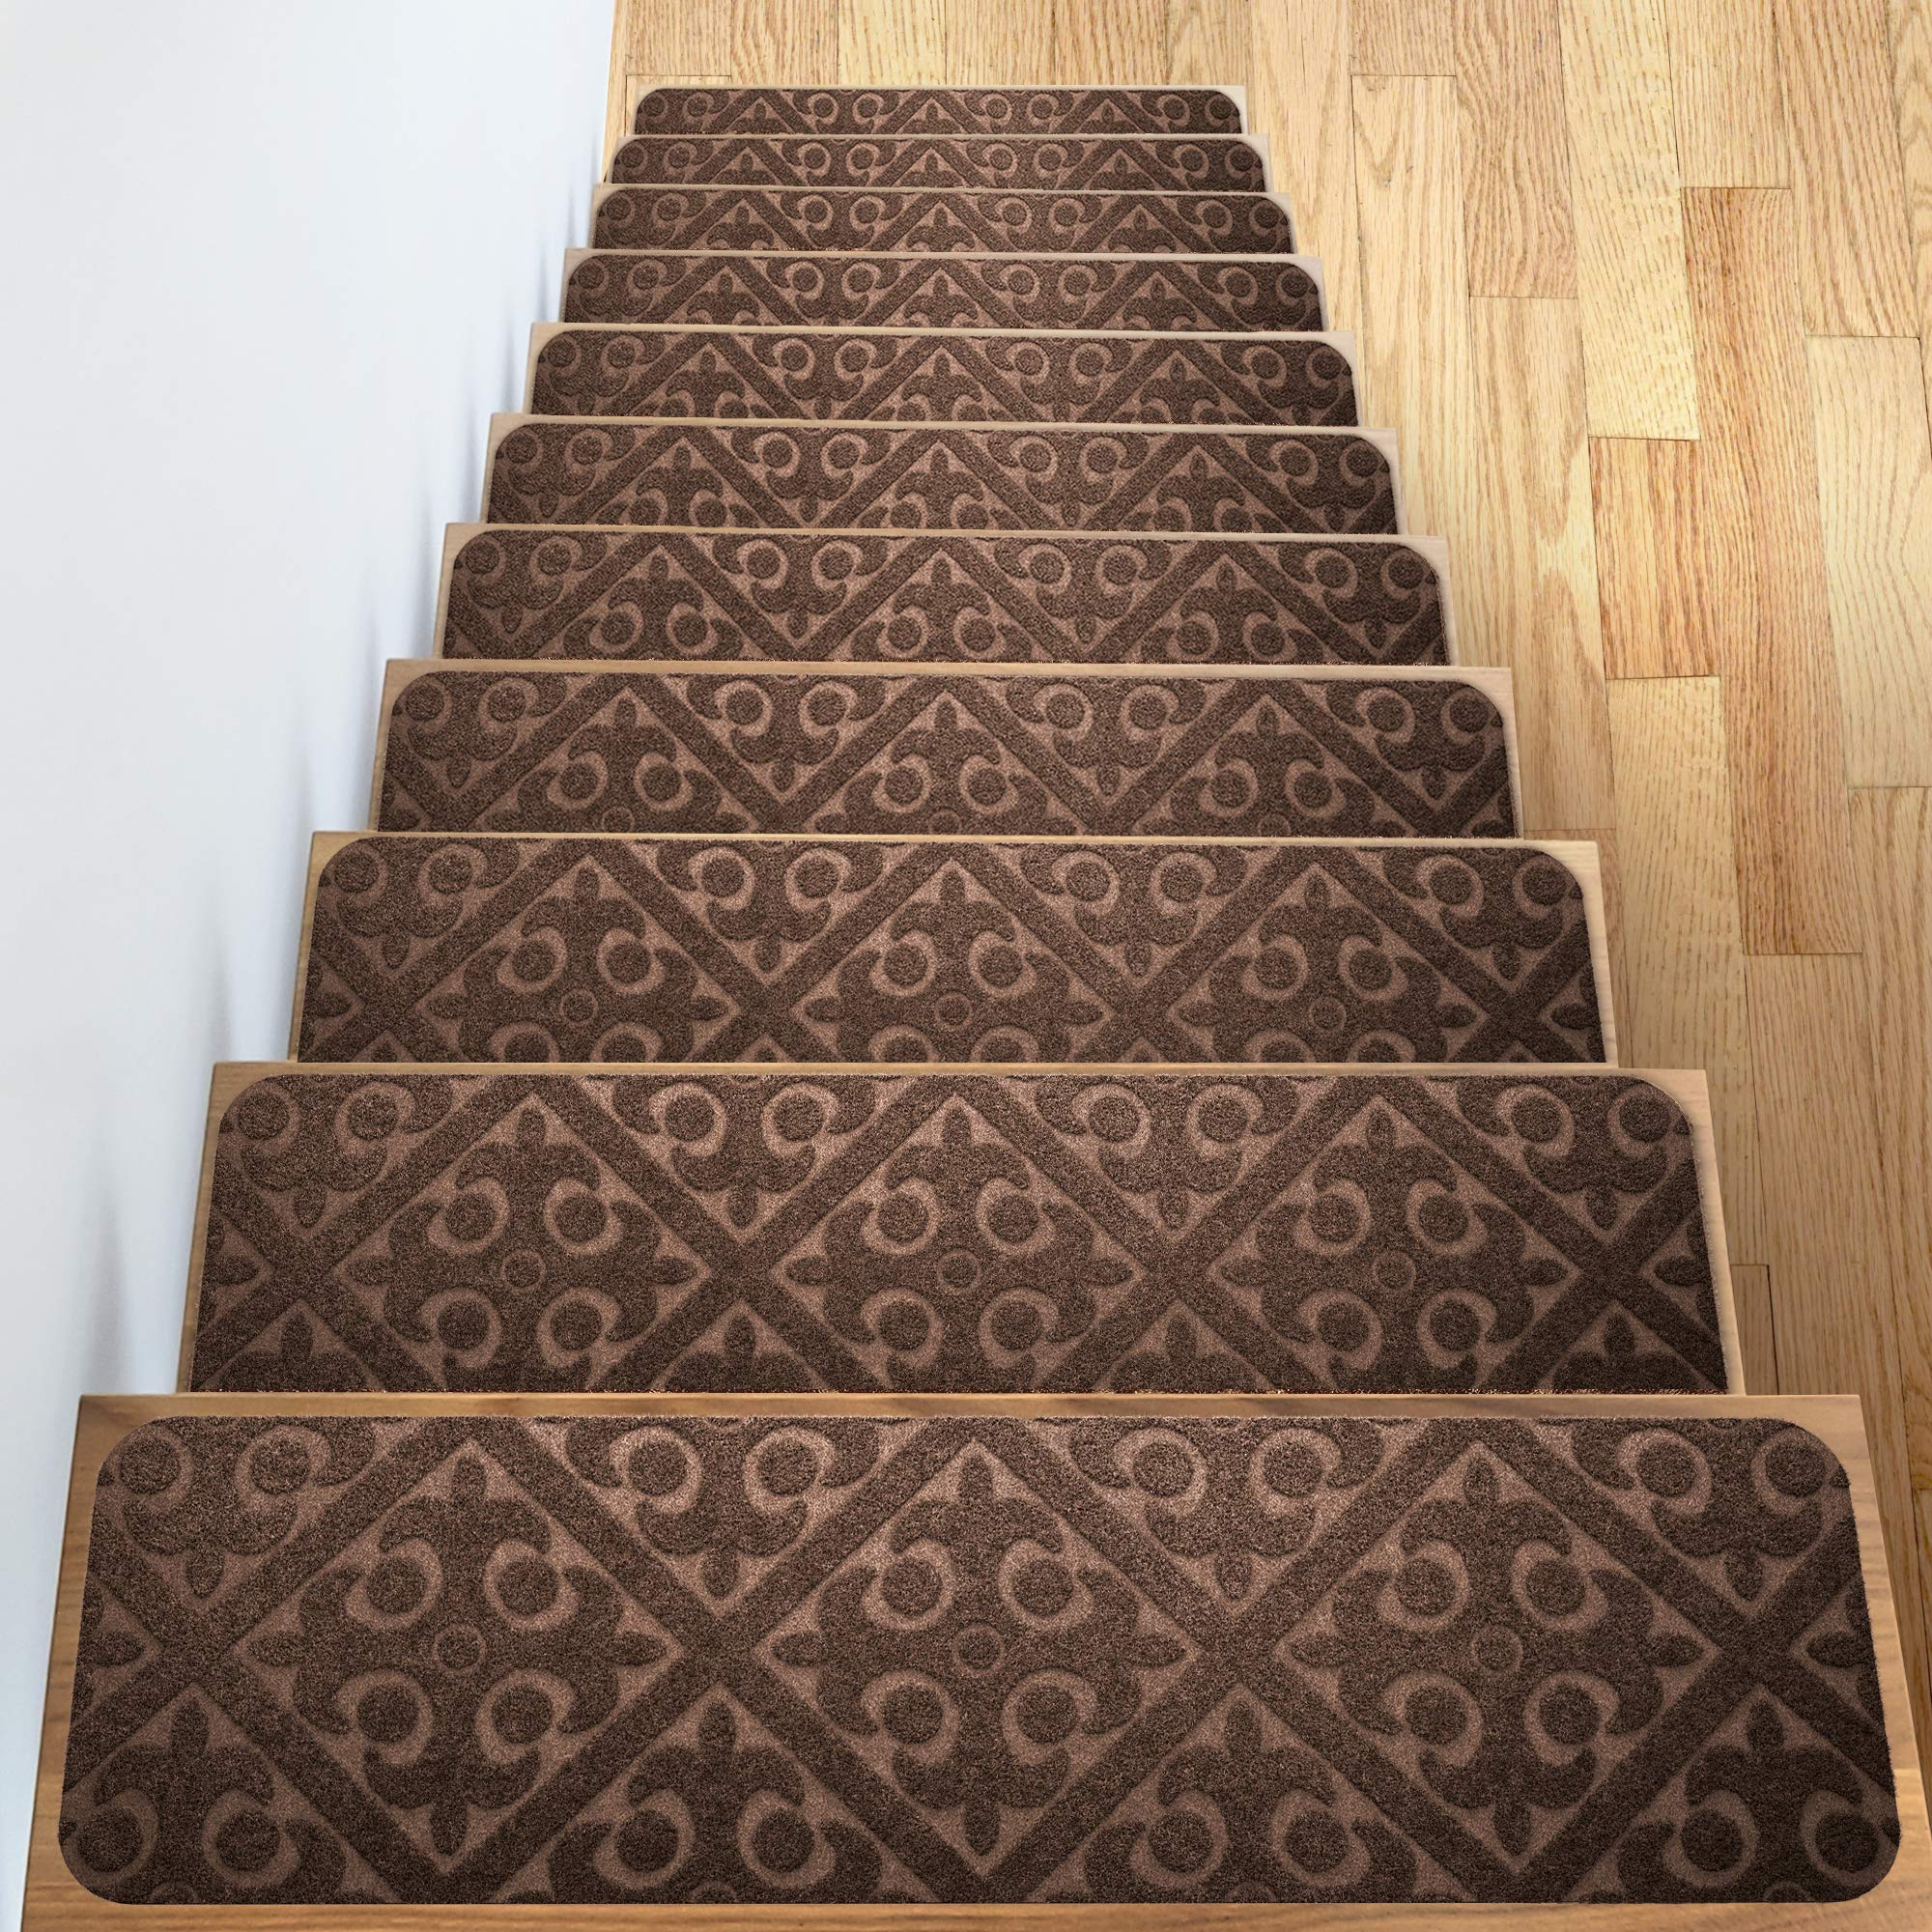 Elogio Carpet Stair Treads Set of 13 Non Slip/Skid Rubber Runner Mats or Rug Tread - Indoor Outdoor Pet Dog Stair Treads Pads - Non-Slip Stairway Carpet Rugs (Brown) 8'' x 30'' Includes Adhesive Tape